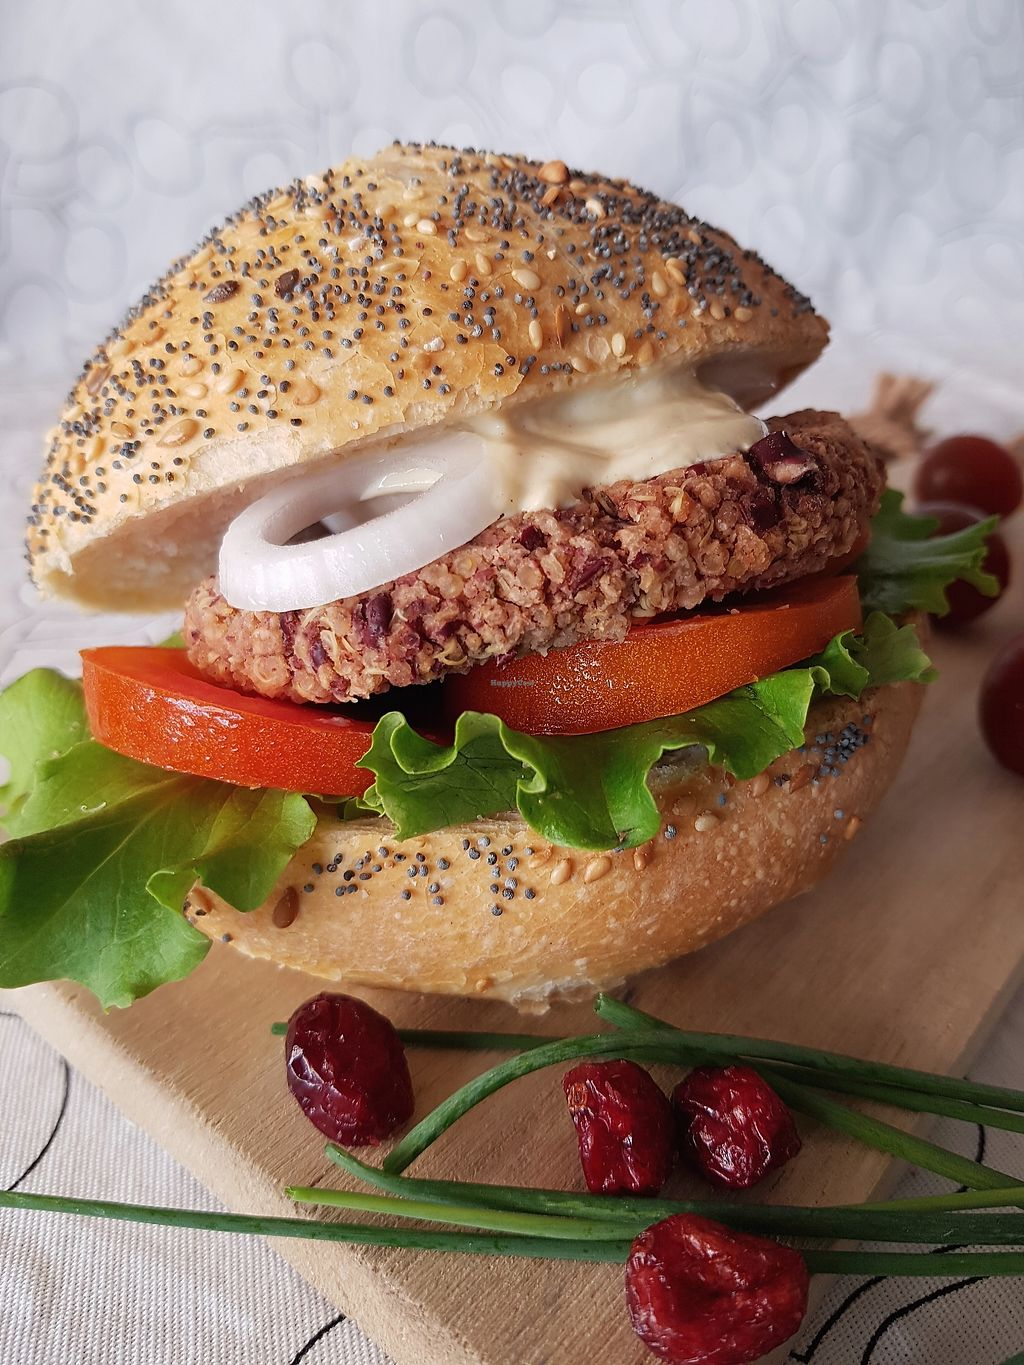 """Photo of Petit Vegan  by <a href=""""/members/profile/petitvegan"""">petitvegan</a> <br/>Homemade vegan burger made of red beans, quinoa, oat and spices <br/> July 13, 2017  - <a href='/contact/abuse/image/95126/279892'>Report</a>"""